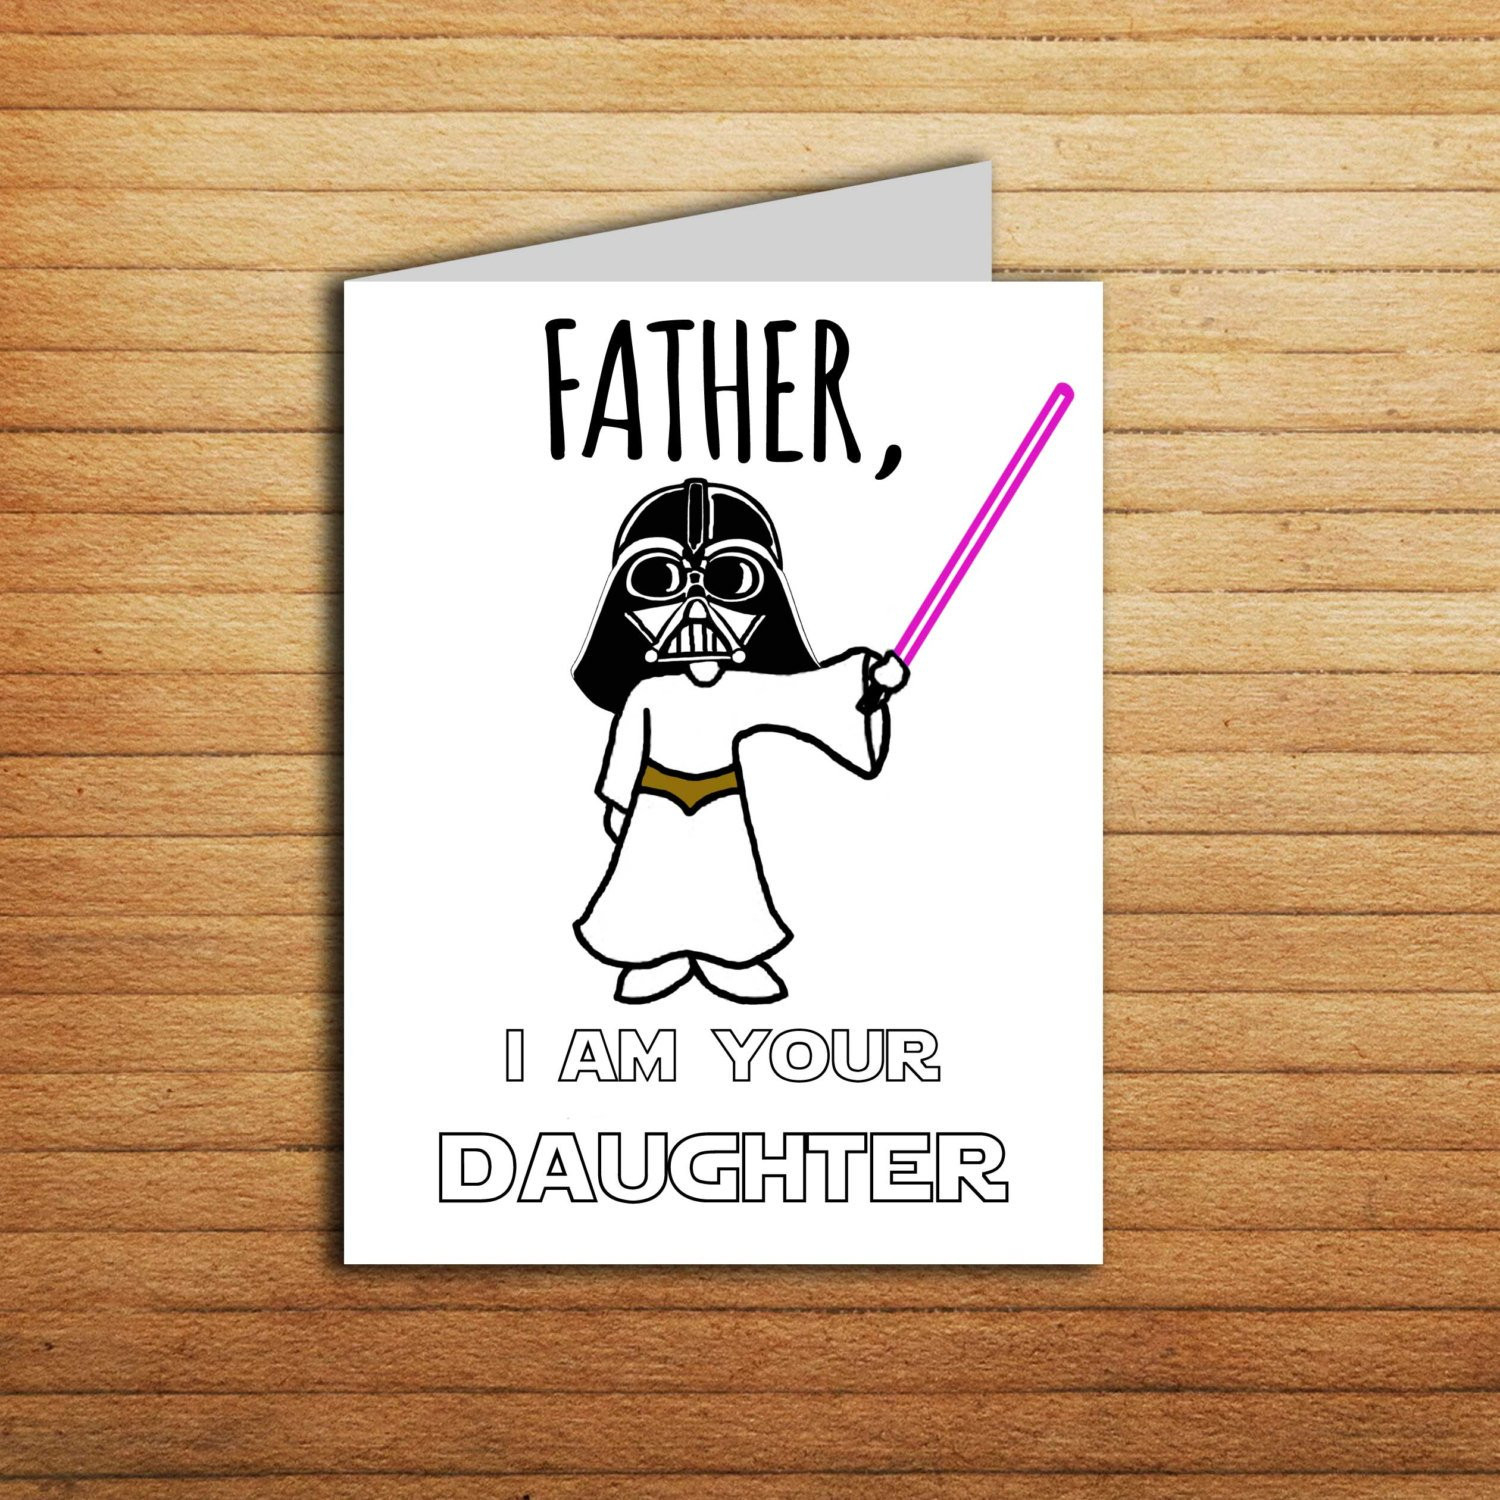 Funny Birthday Card Ideas For Dad The 20 Best Ideas For Funny Birthday Gifts For Dad Home